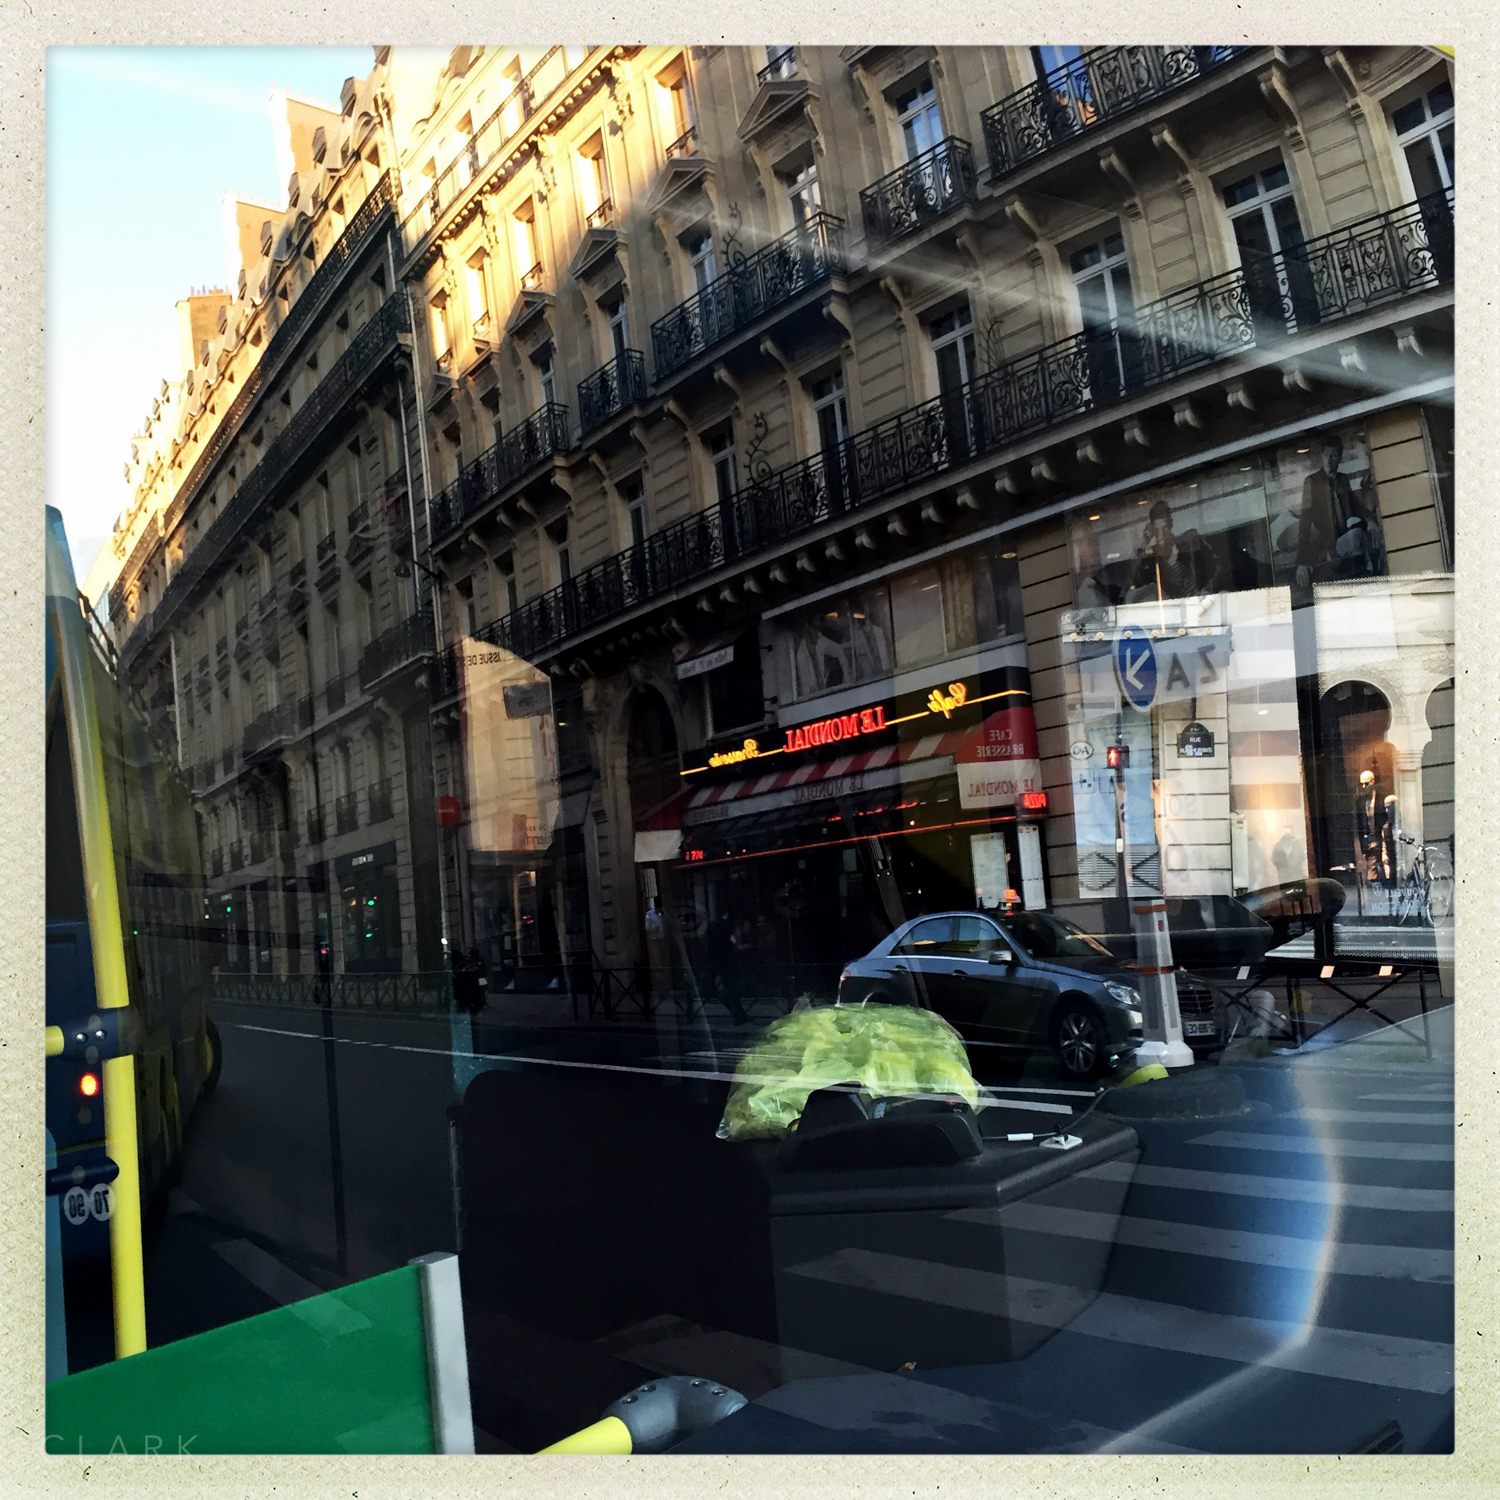 015_DerekClarkPhoto-Paris_iPhone.jpg